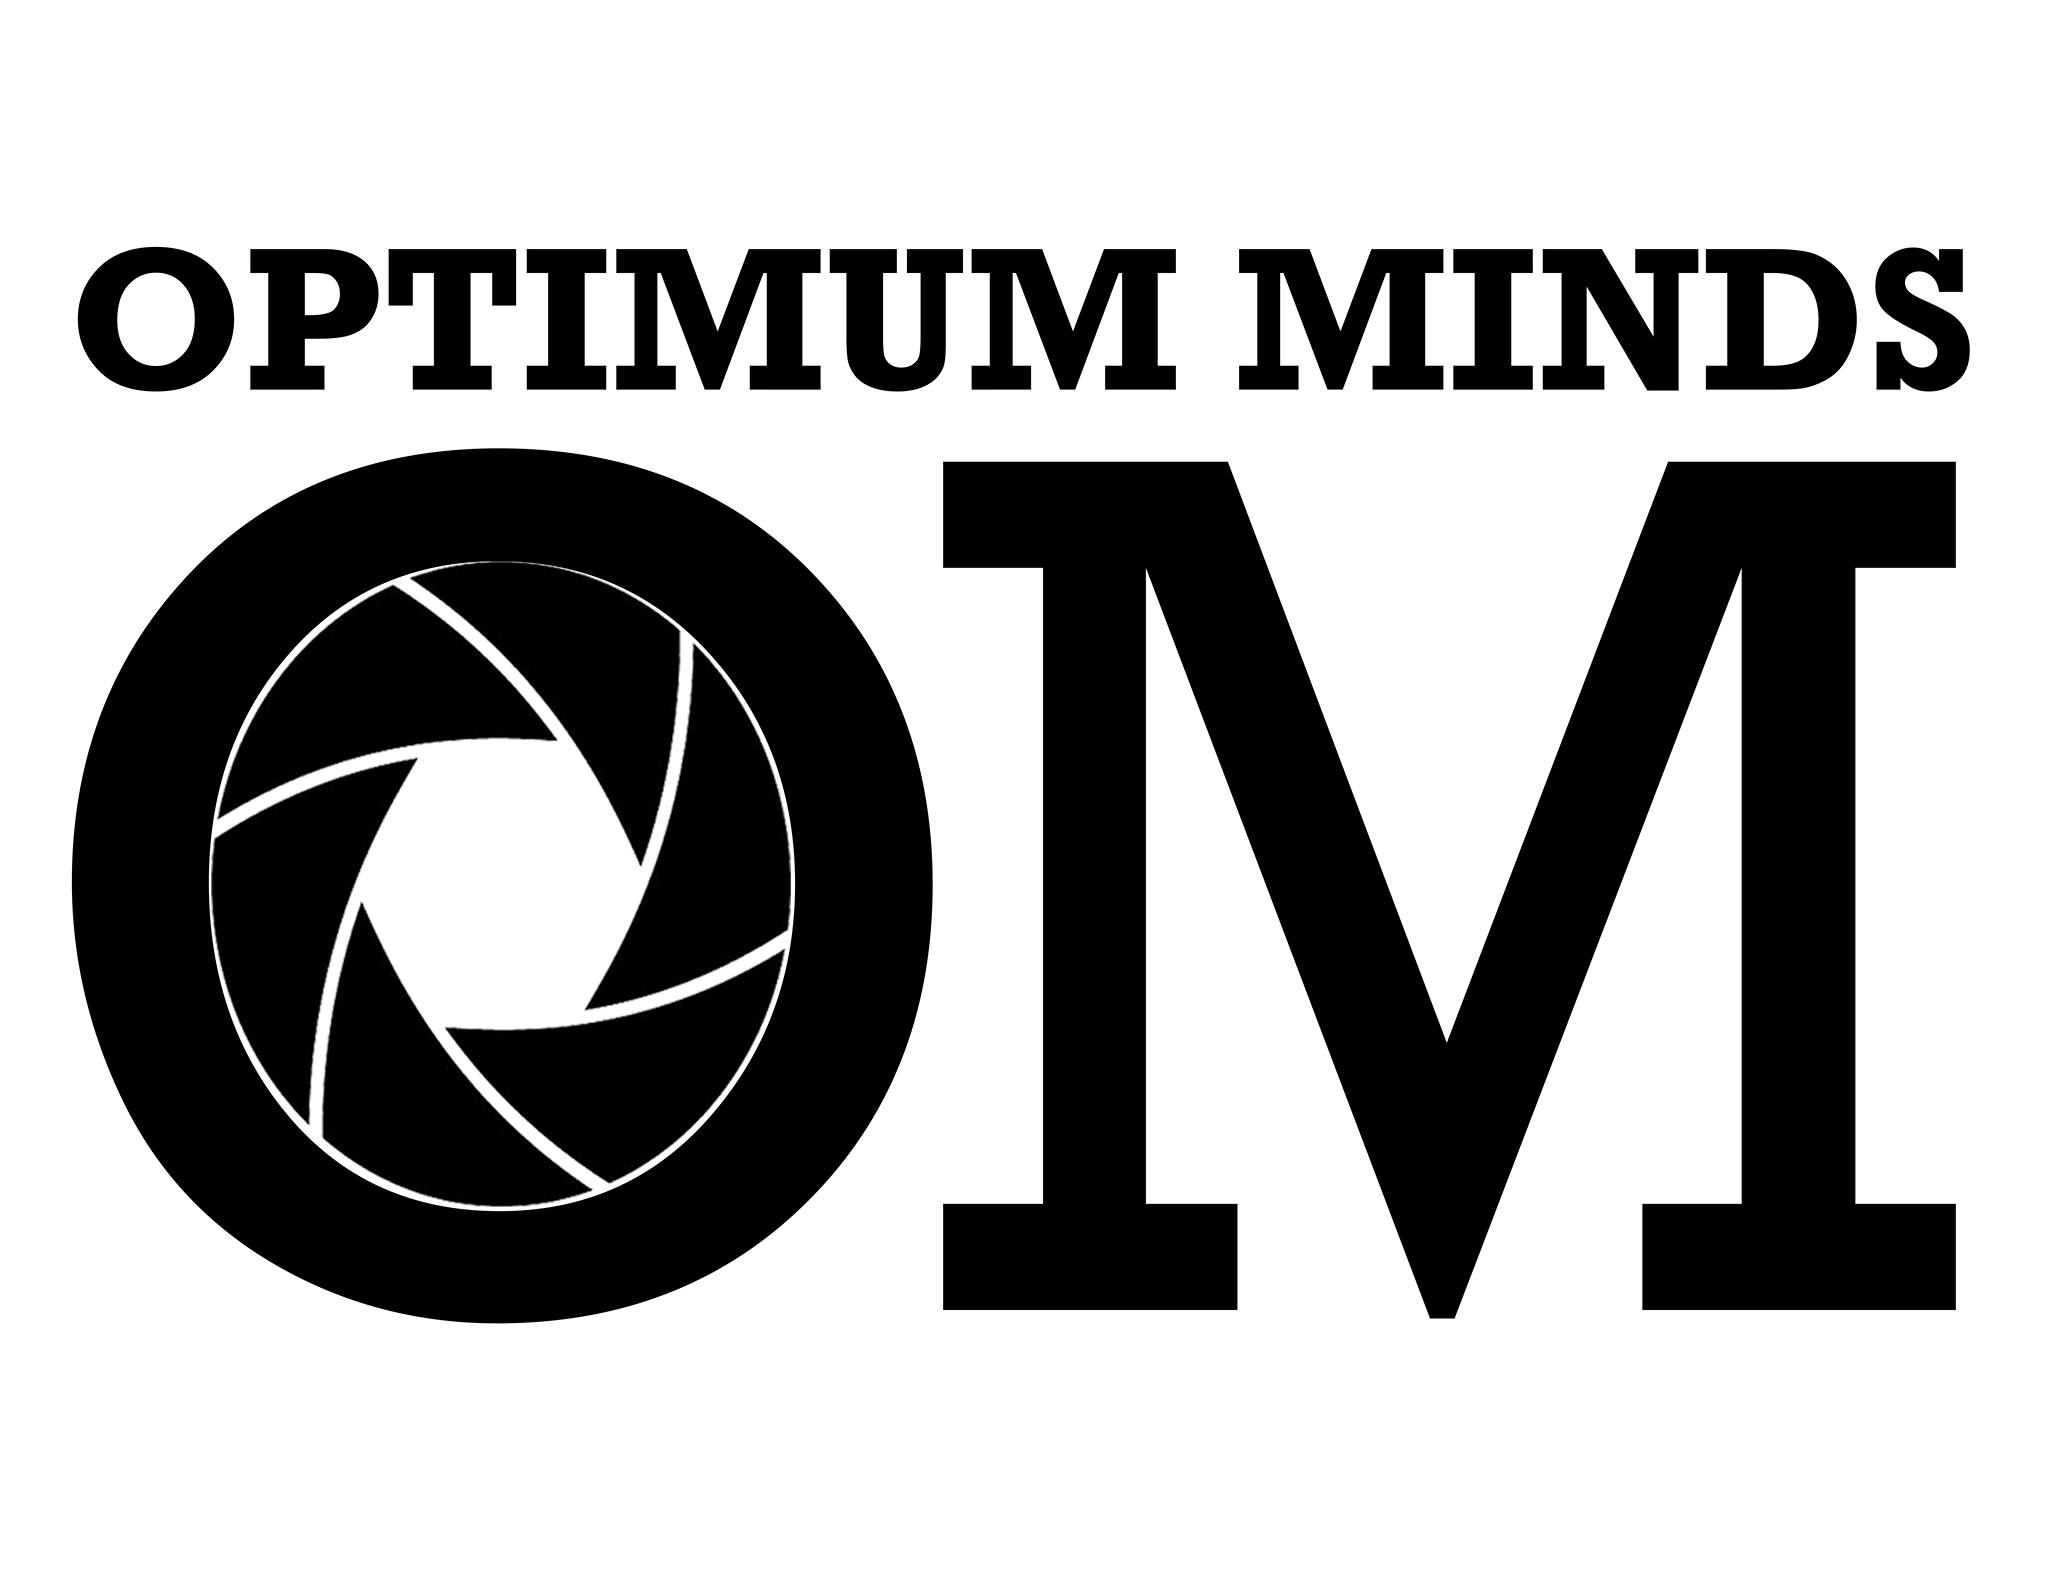 Optimum Minds Media Productions    For interested applicants please send your resume at this Email: optimum.minds720@gmail. com